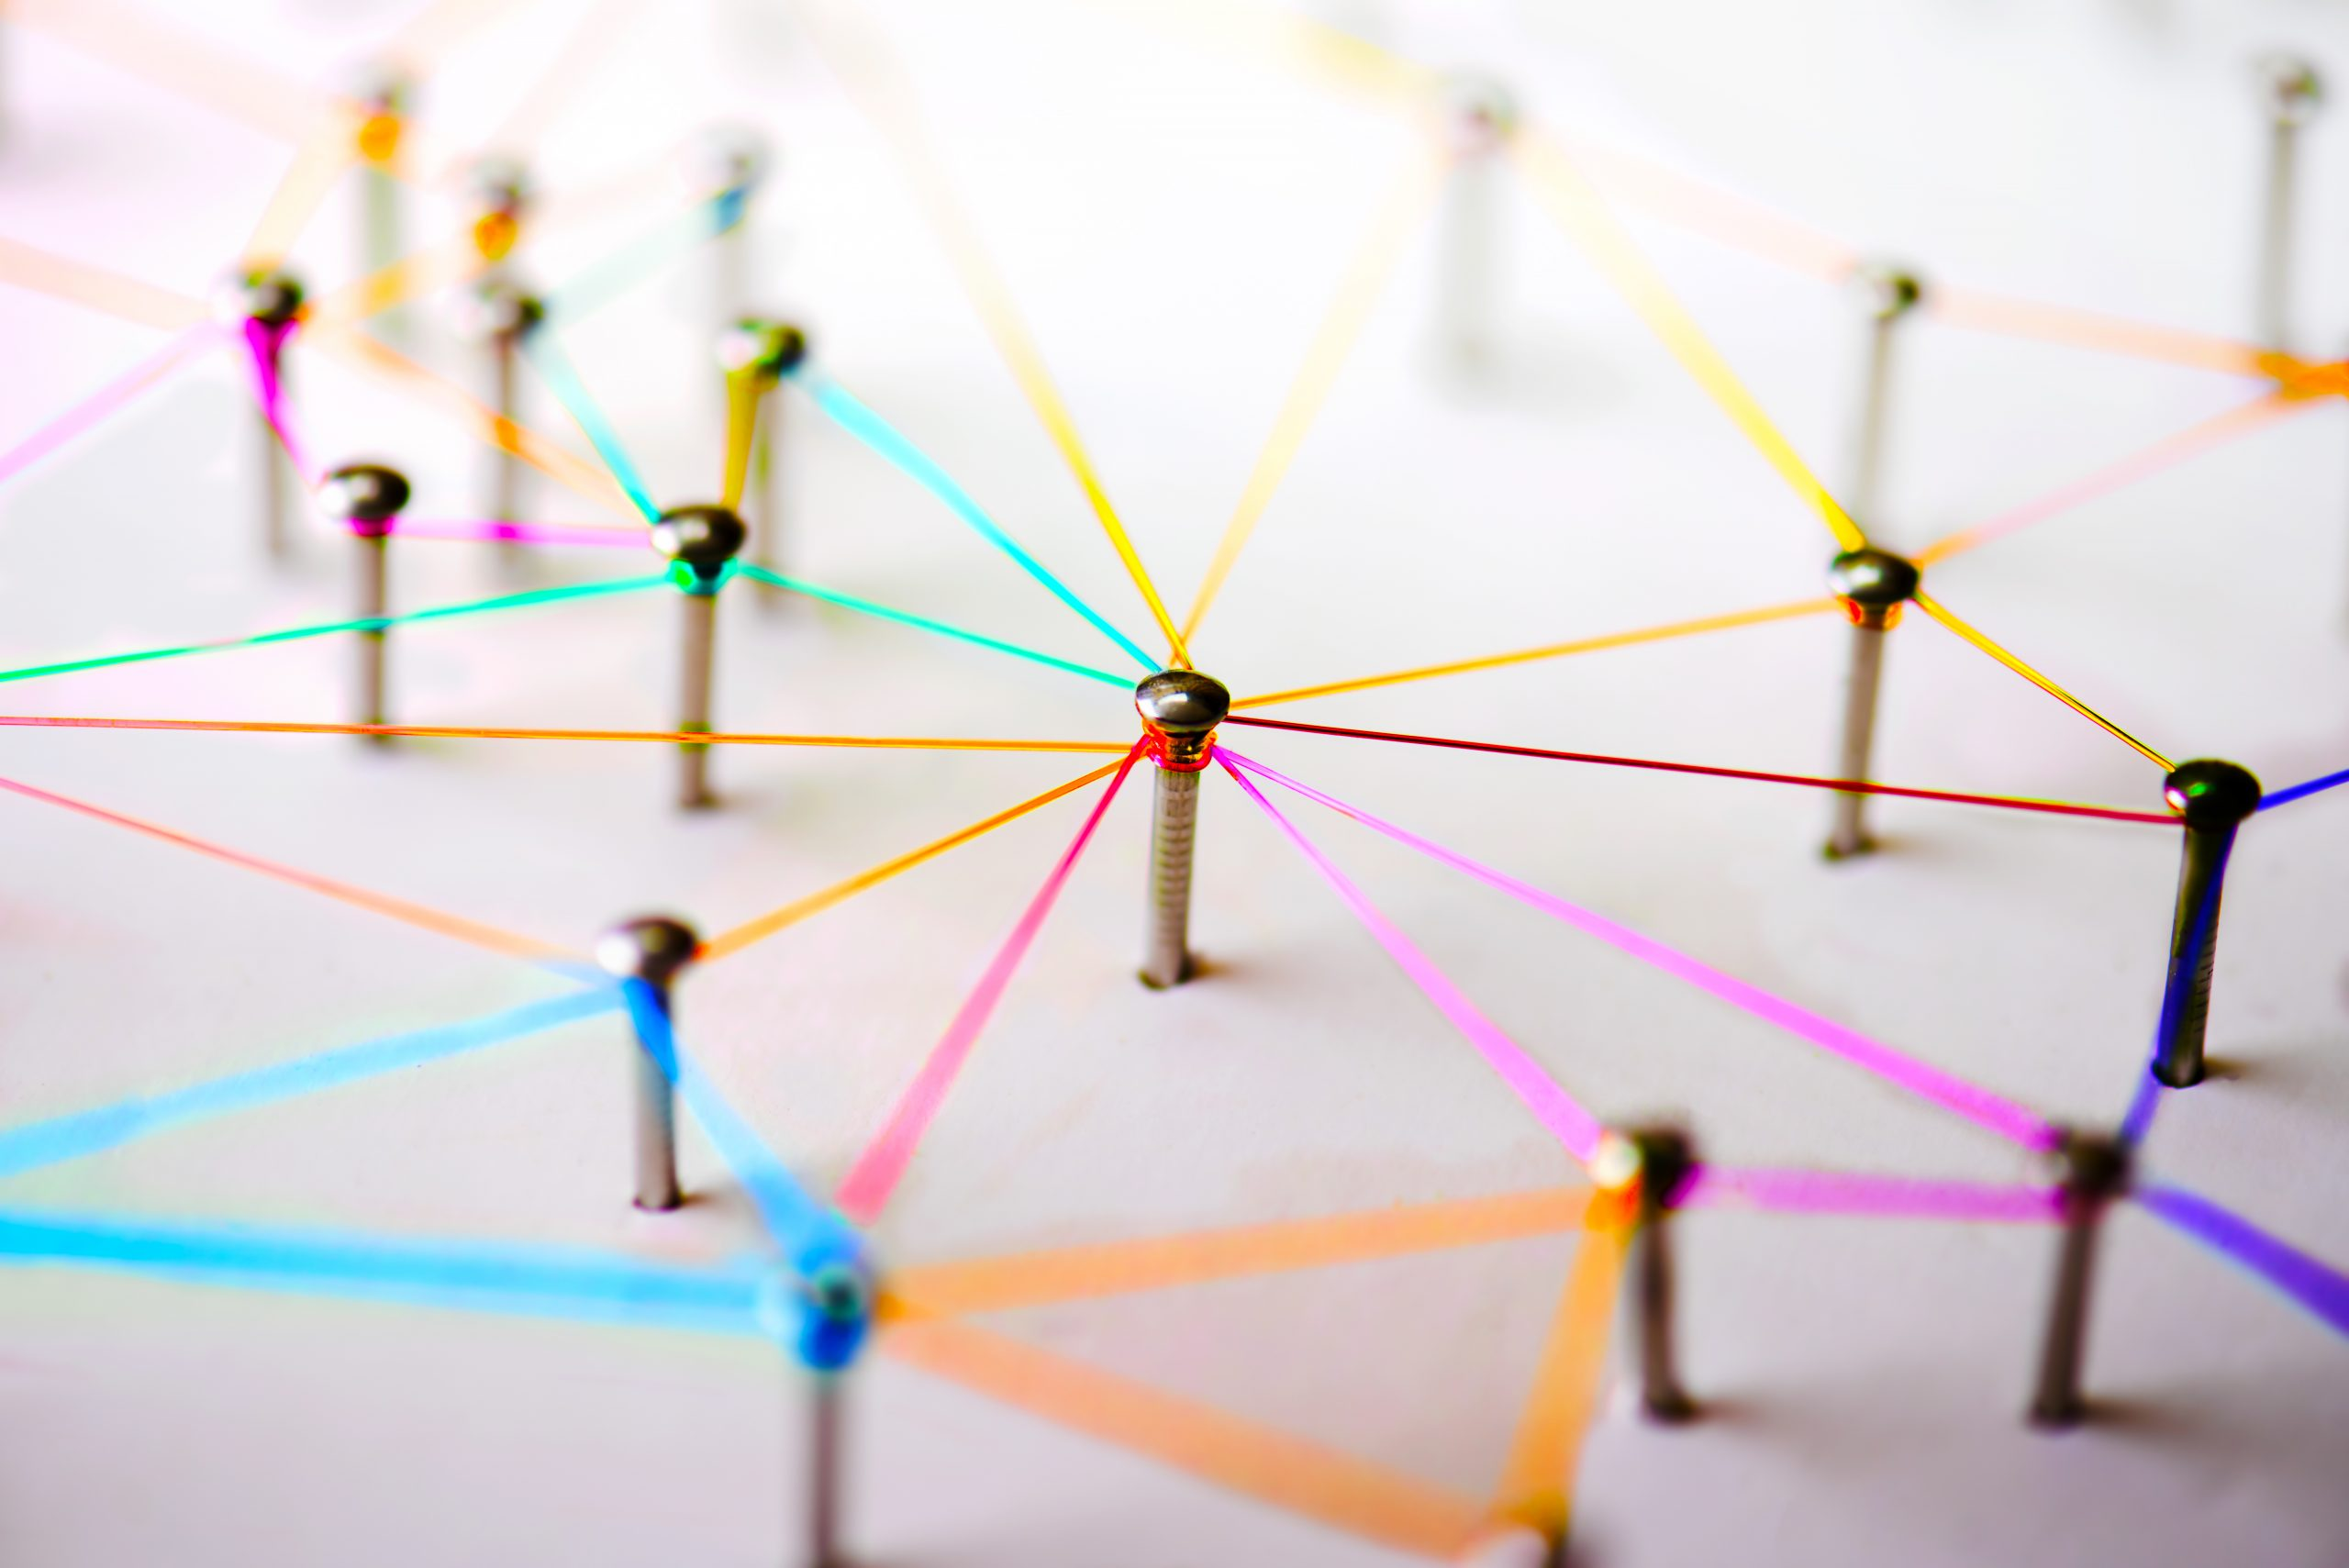 business intelligence helps companies map out their strategy